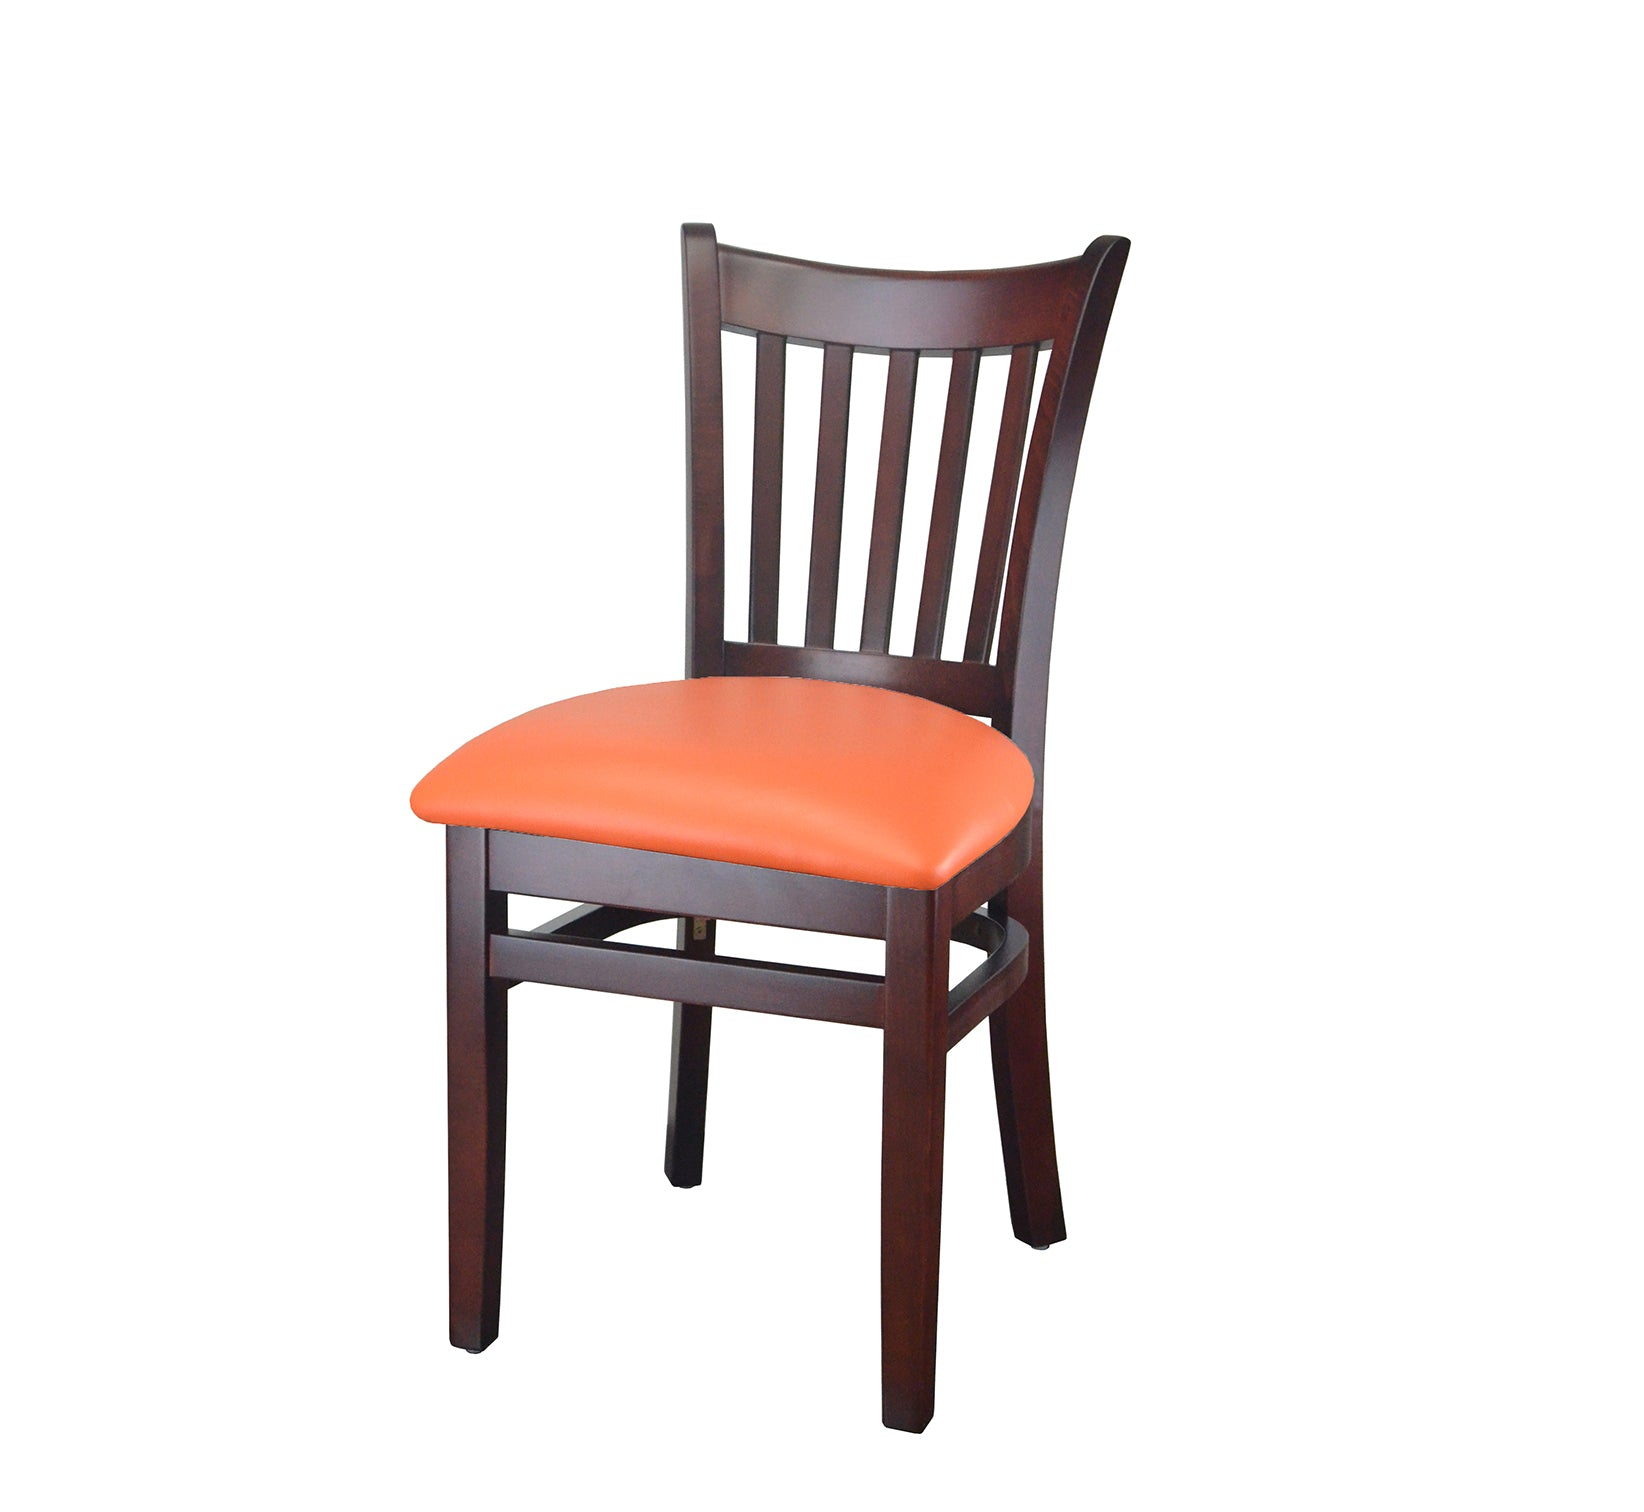 242 D 01 Mahogany Finish Vertical Slat Dining Chair